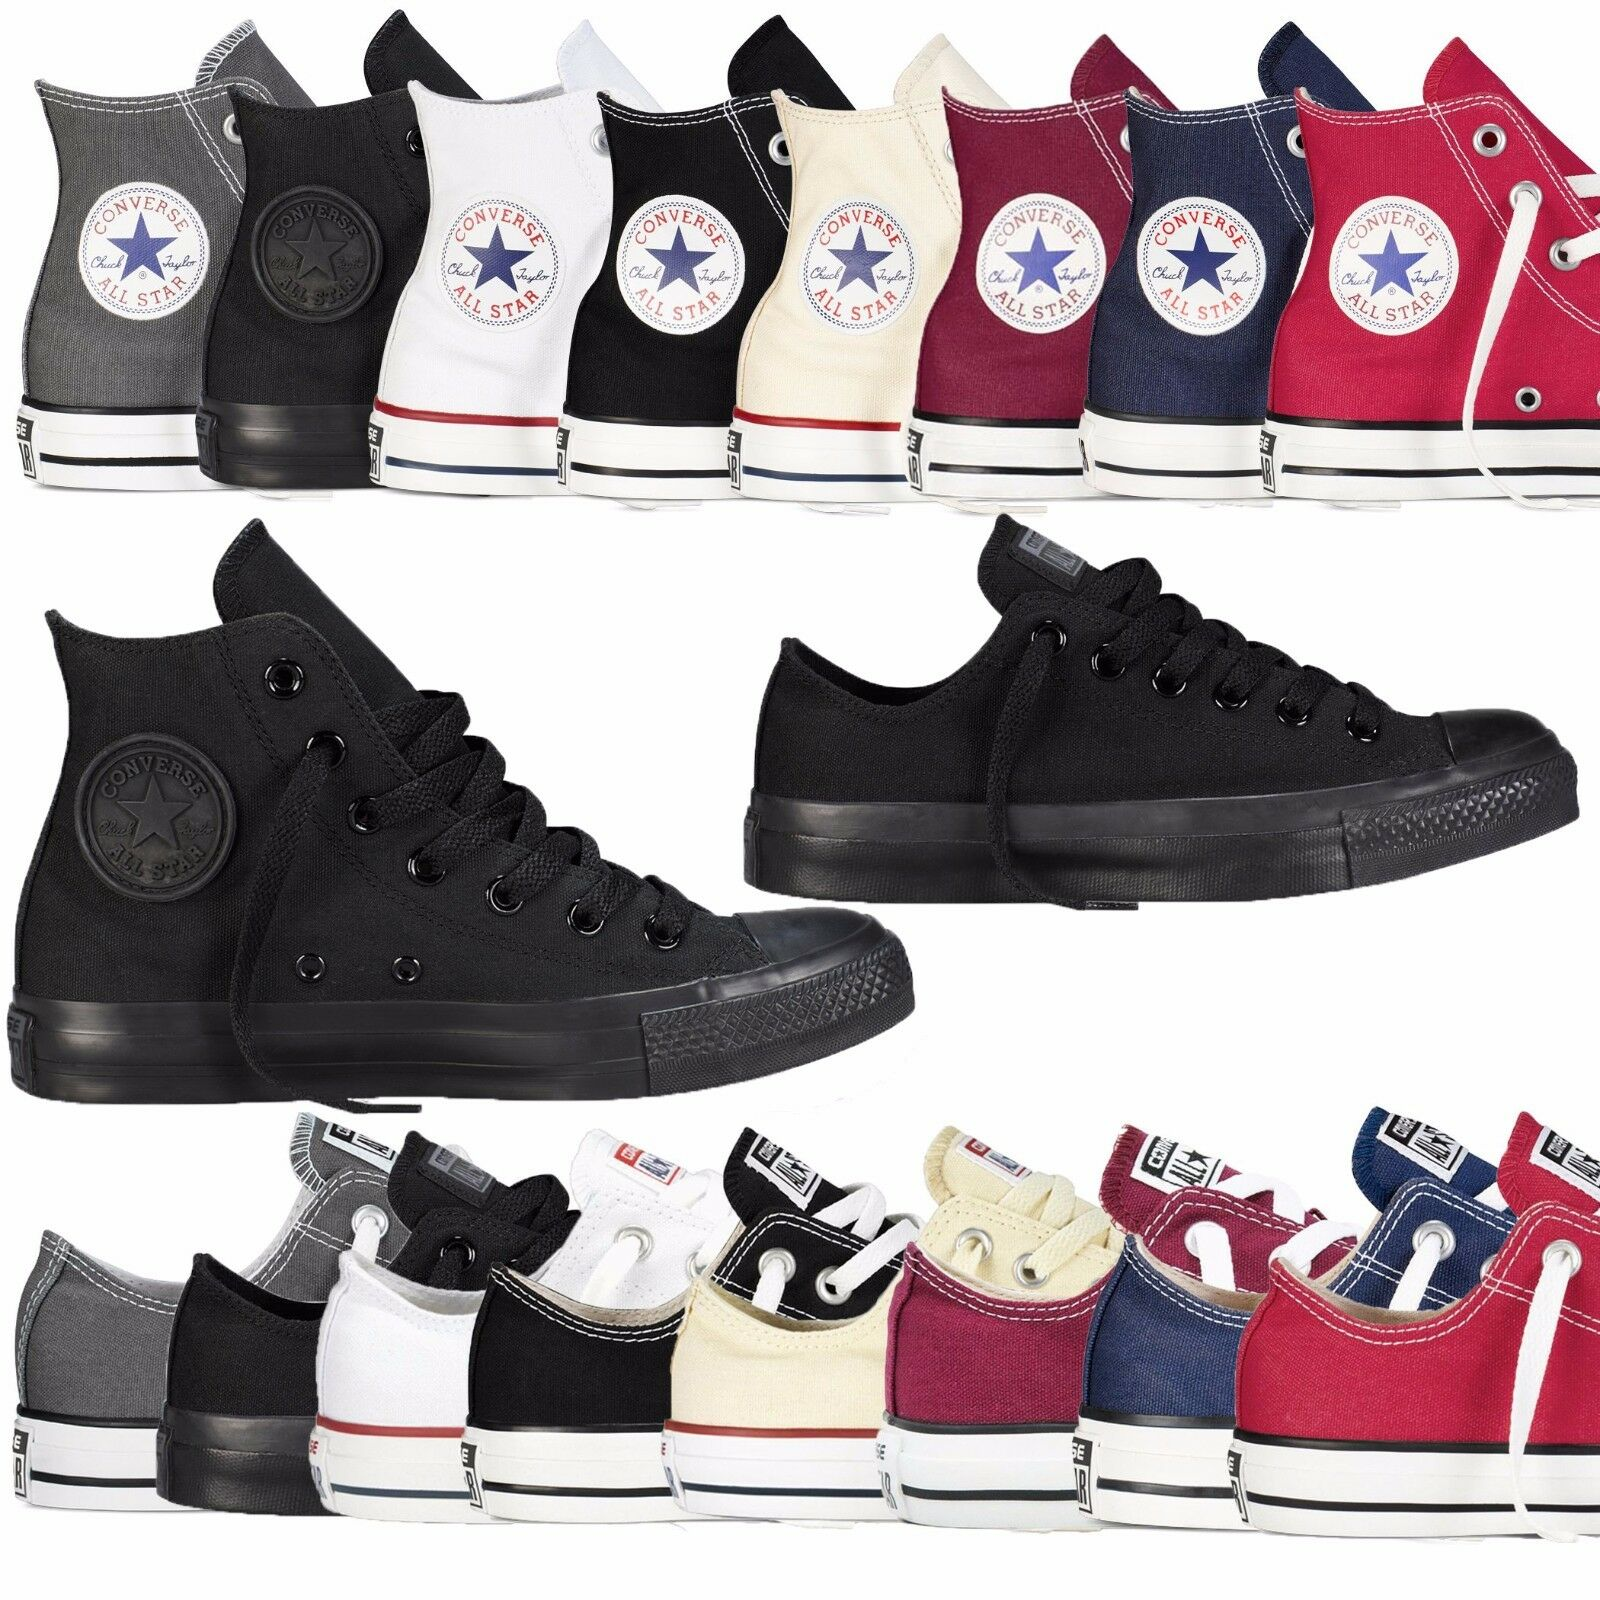 c11246c3a415 Details about Converse Unisex Chuck Taylor Classic Colour All Star Hi Lo  Tops Size Trainers